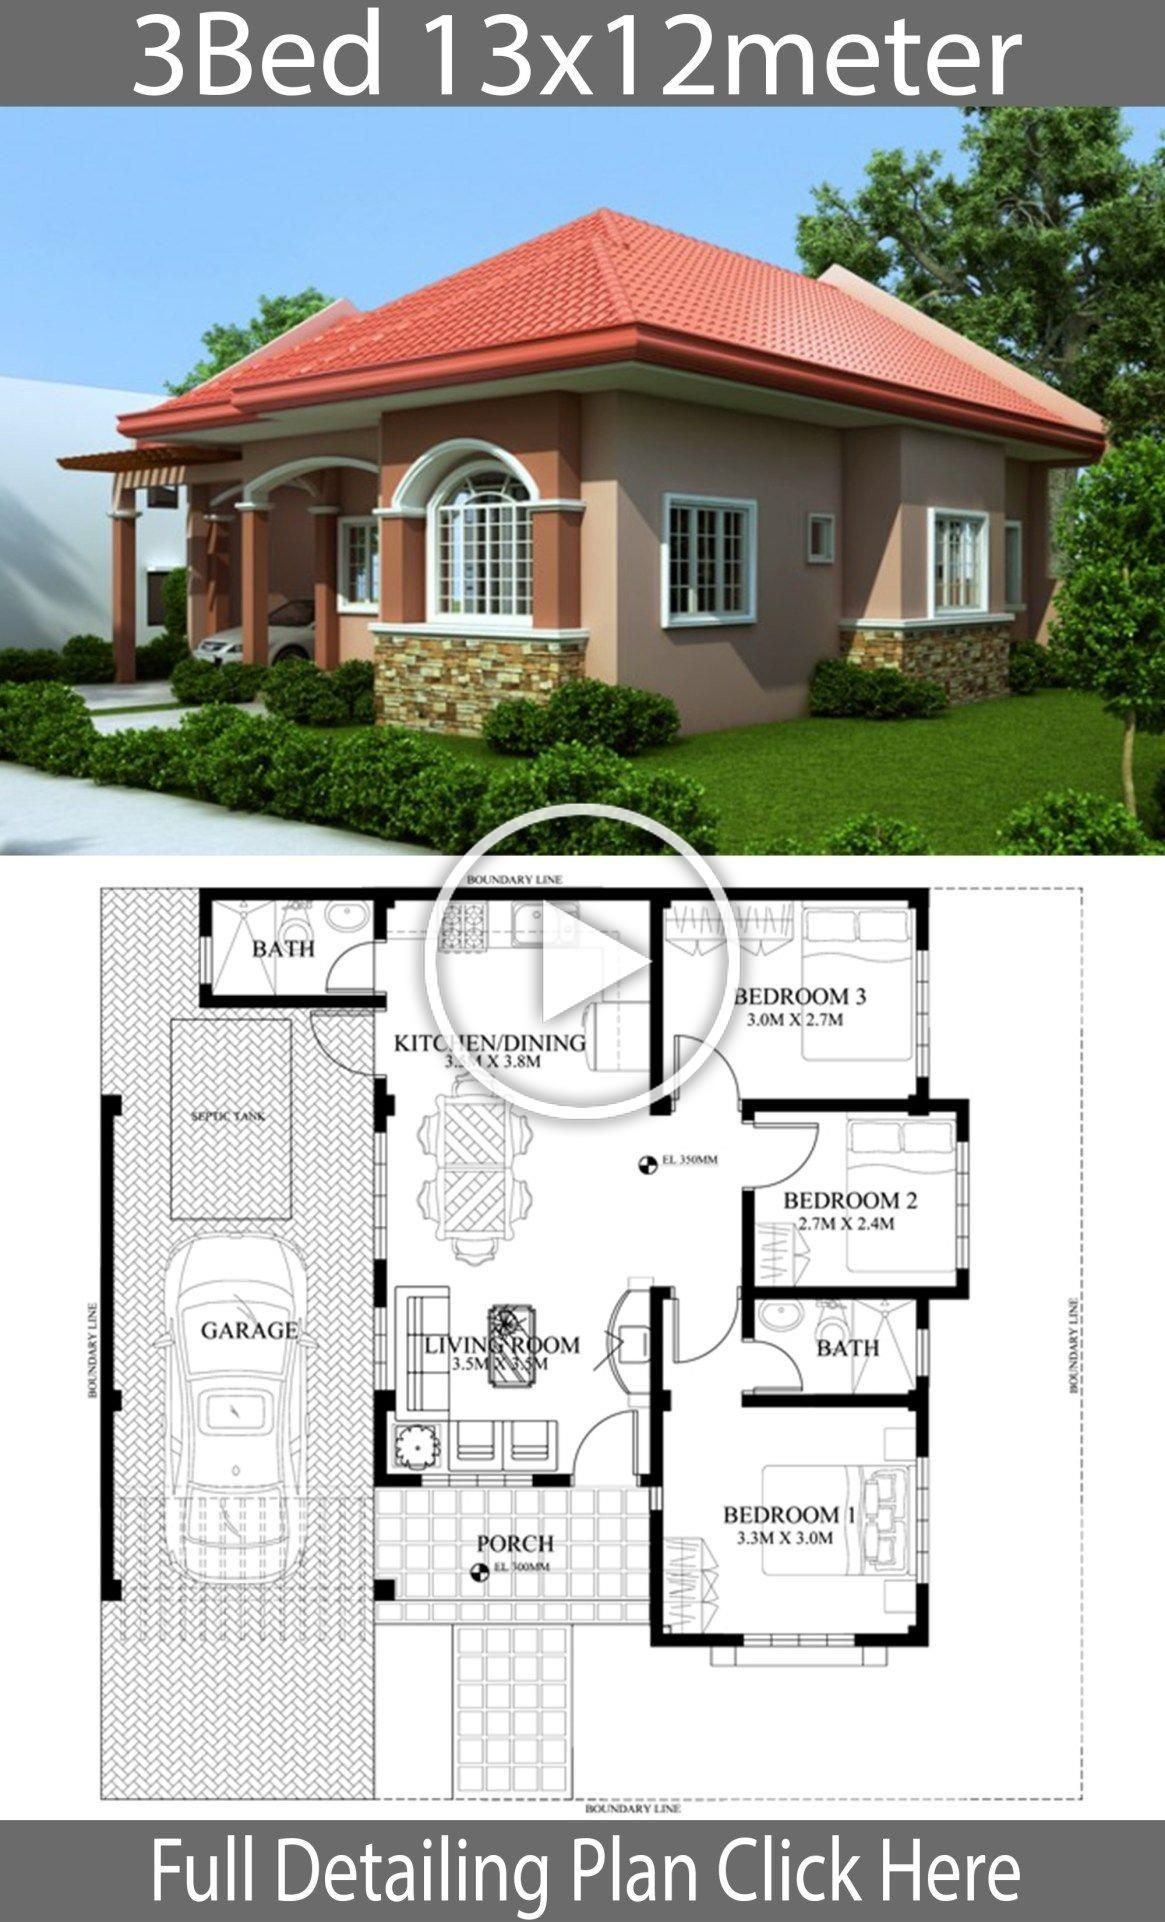 Home Design Plan 13x12m With 3 Bedrooms Home Design With Affordable House Plans Model House Plan Modern Bungalow House